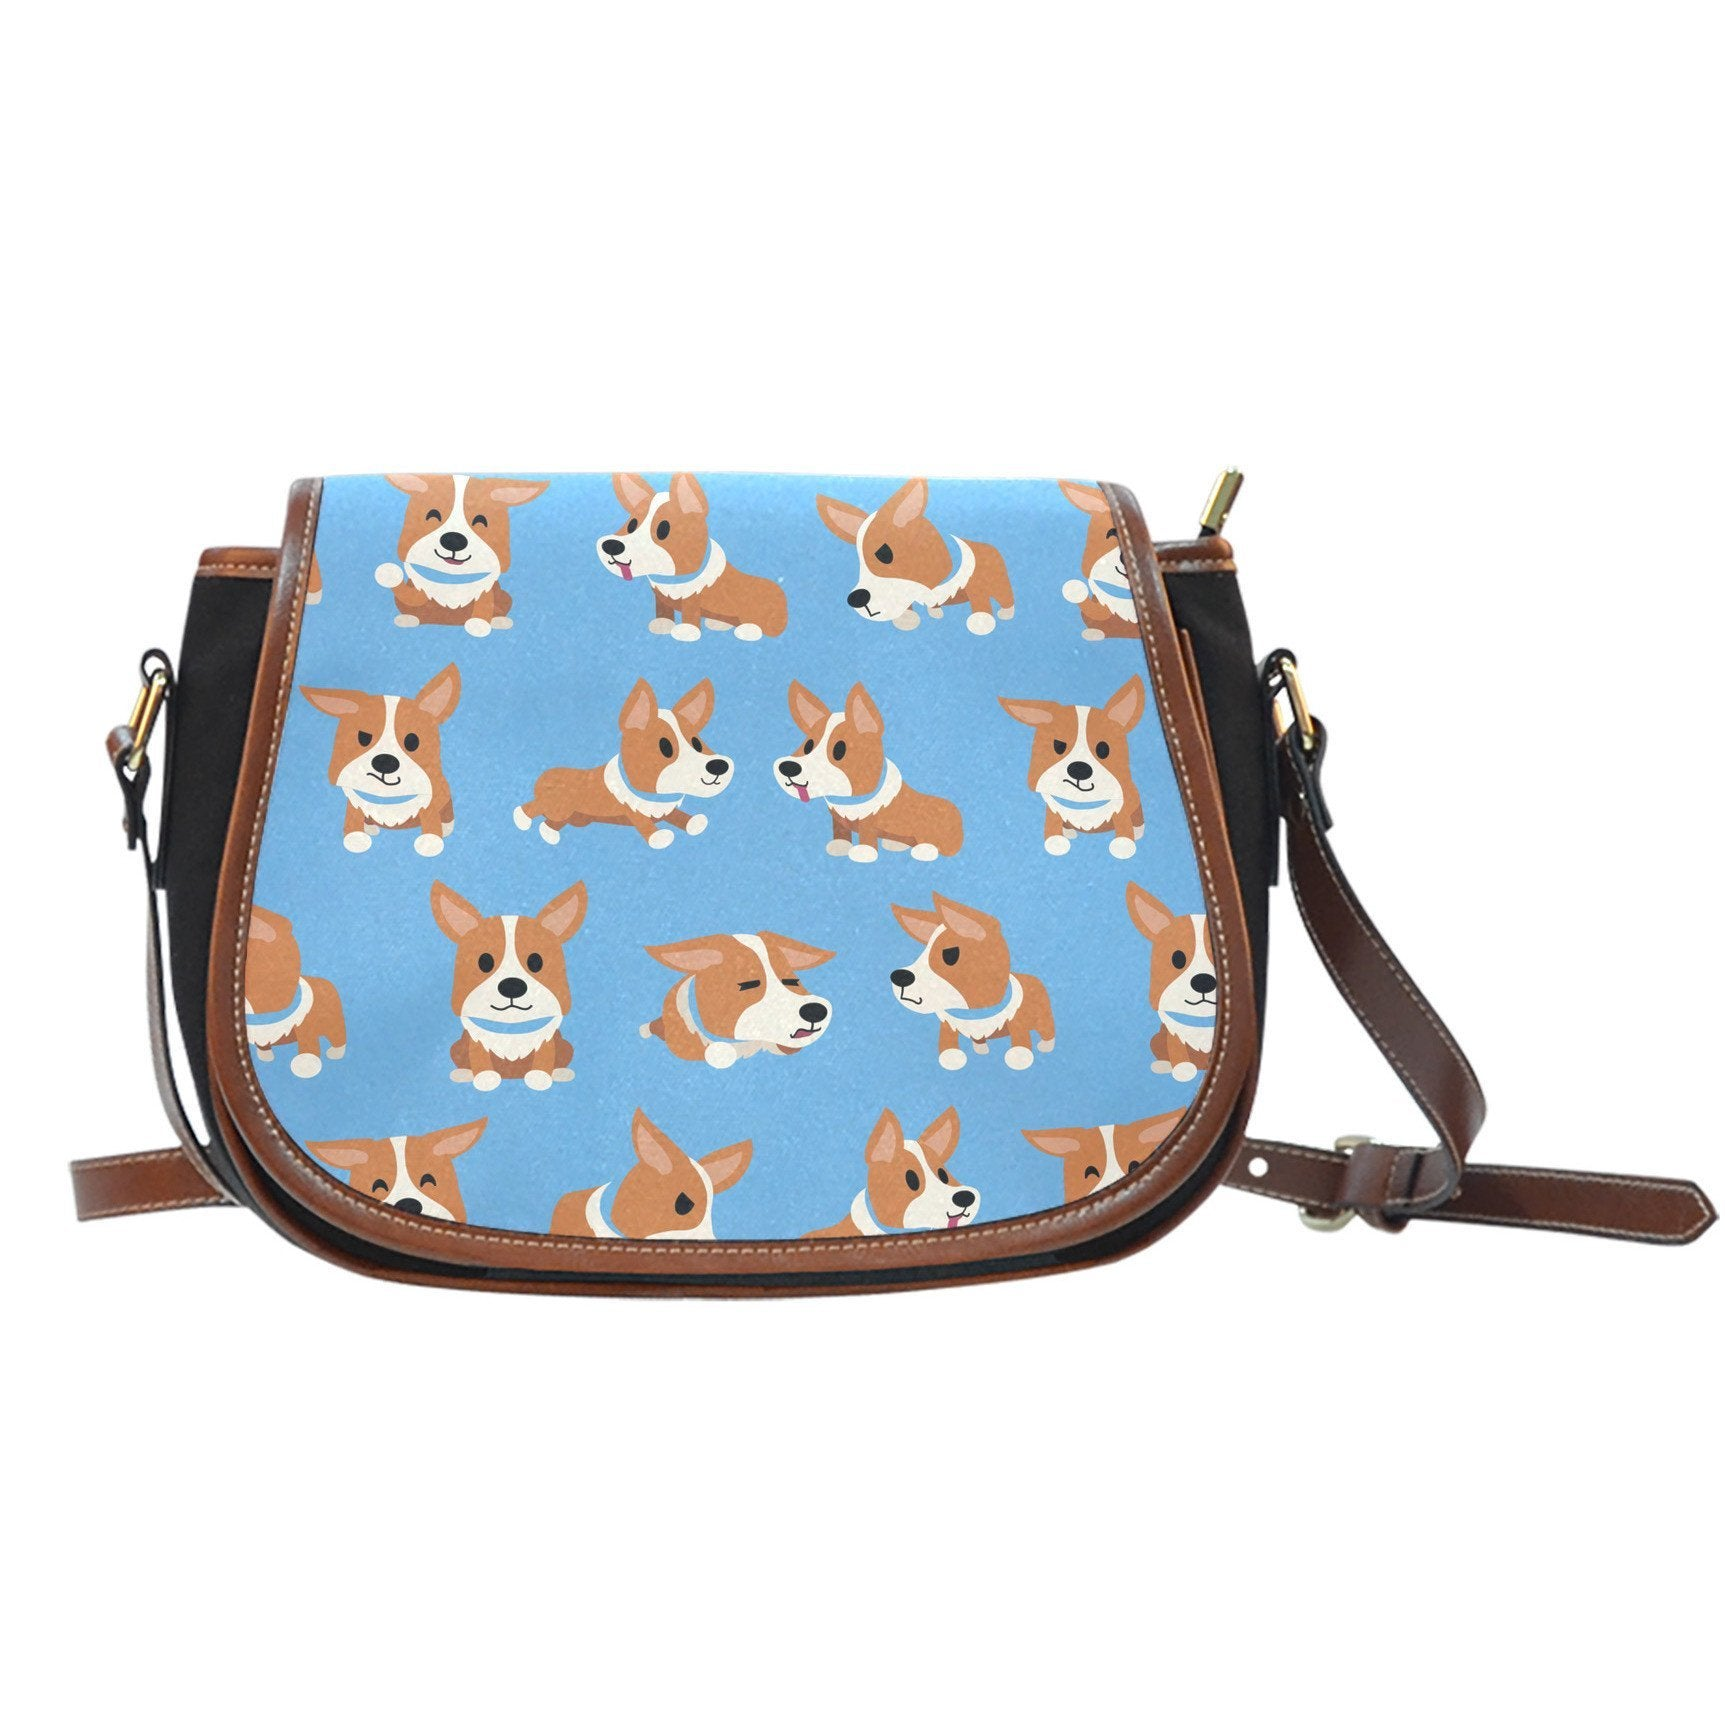 Corgis Canvas Leather Saddle Bag